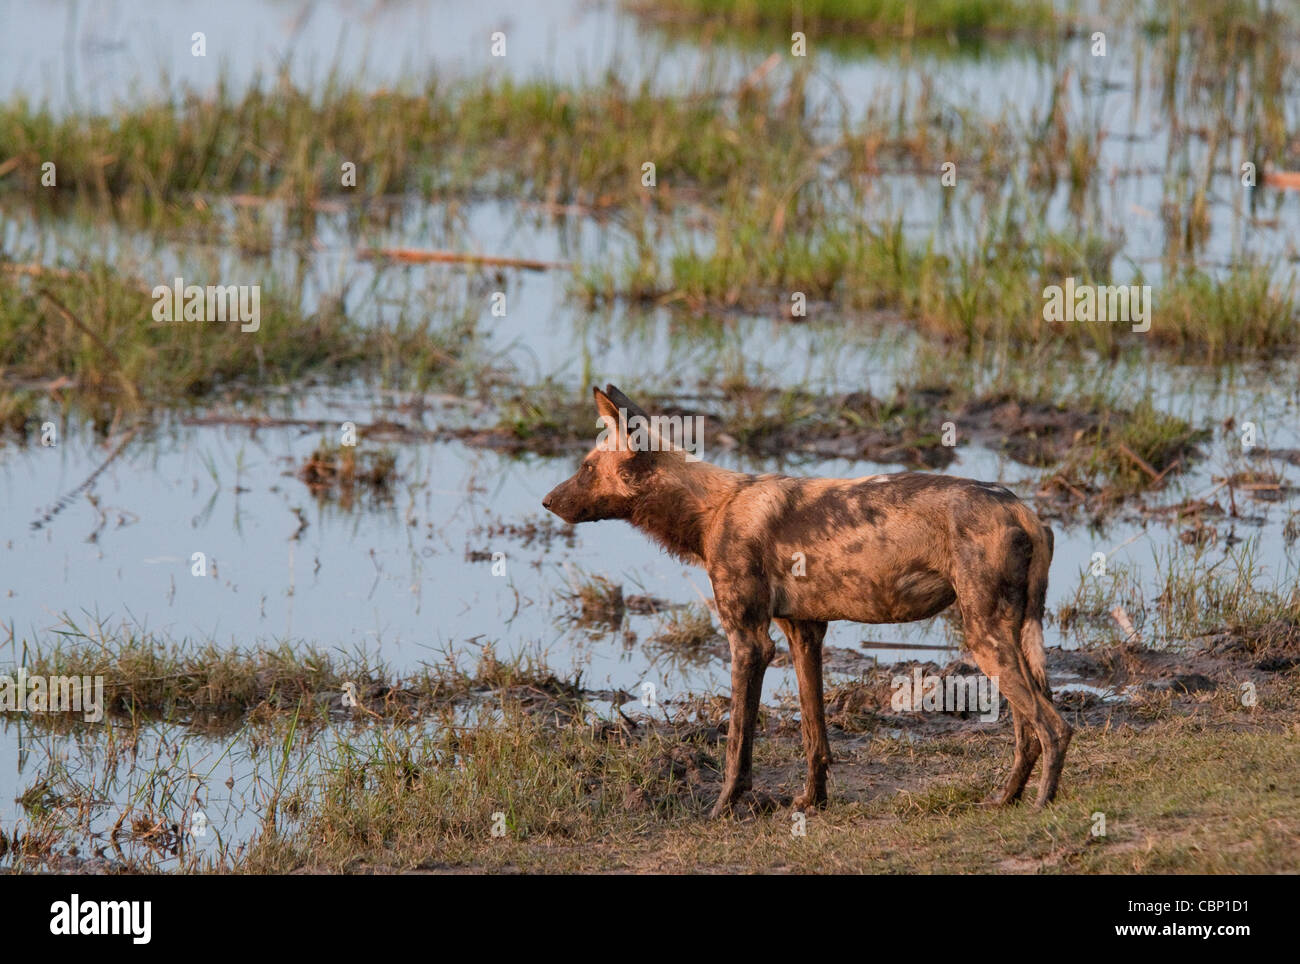 Africa Botswana- Linyanti Reserve-African wild dog standing by water Stock Photo